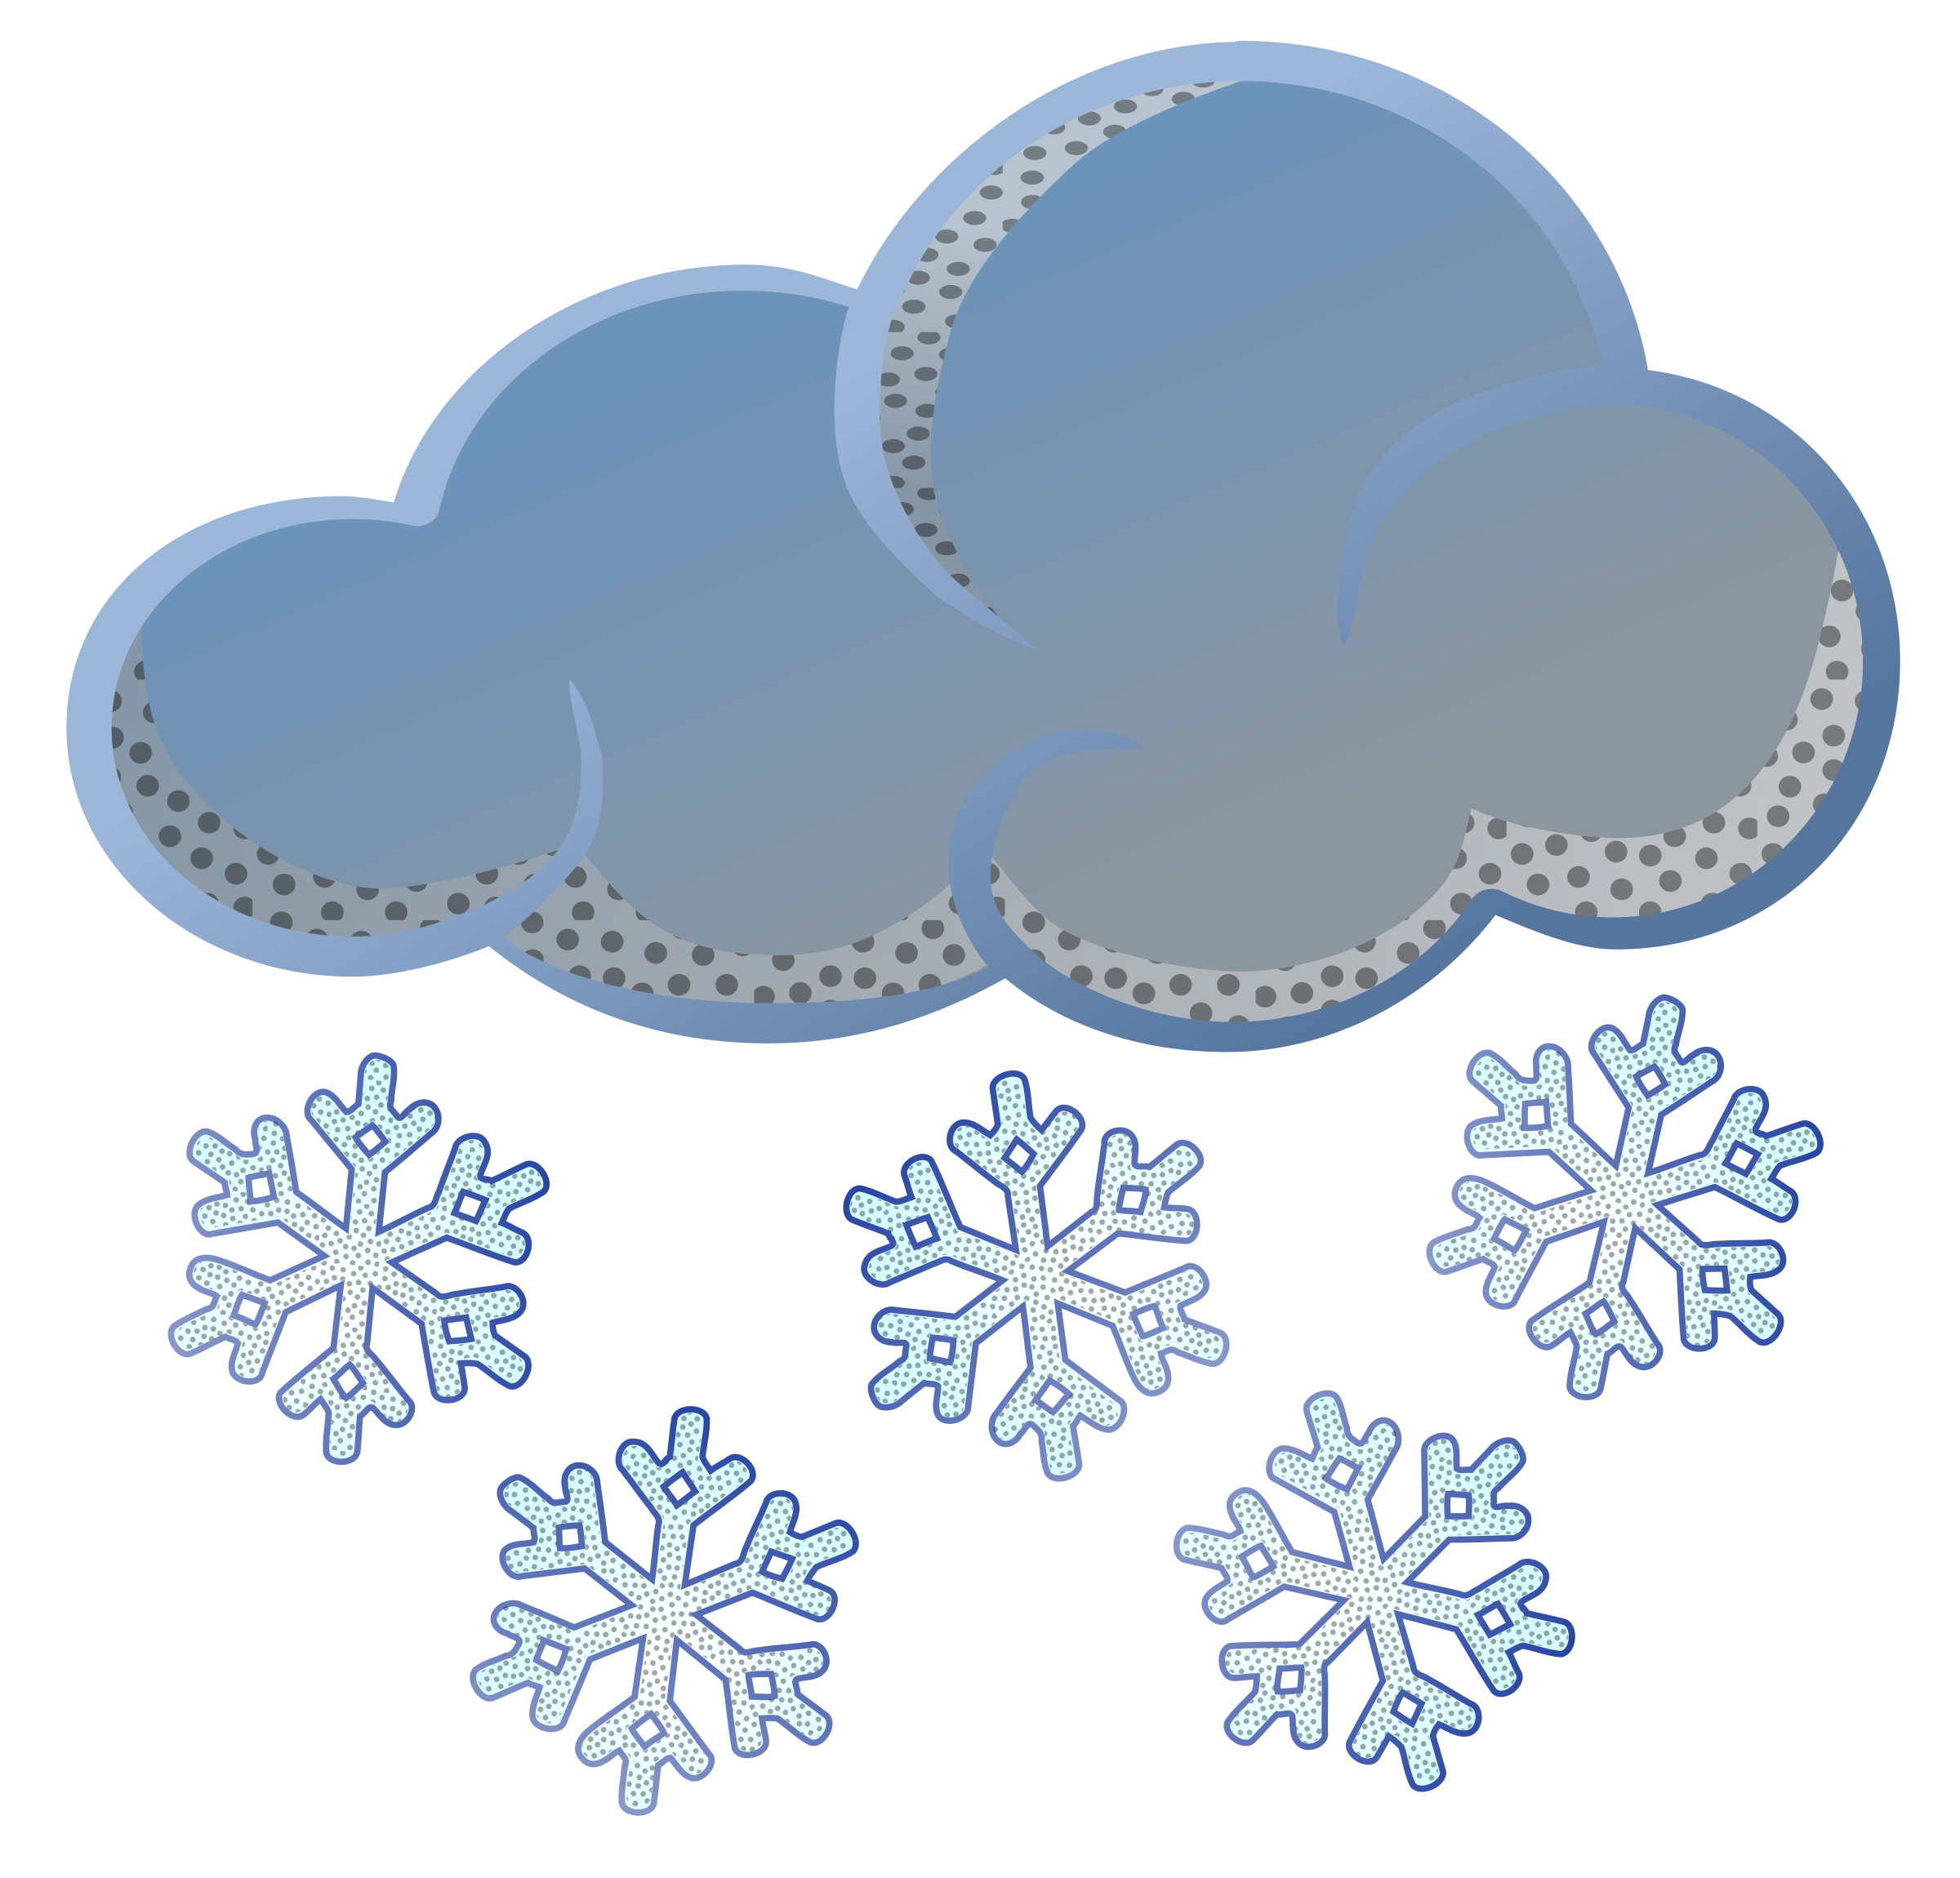 Snowflake cloud clipart banner free library 28+ Collection of Snow Clipart Png Transparent | High quality, free ... banner free library